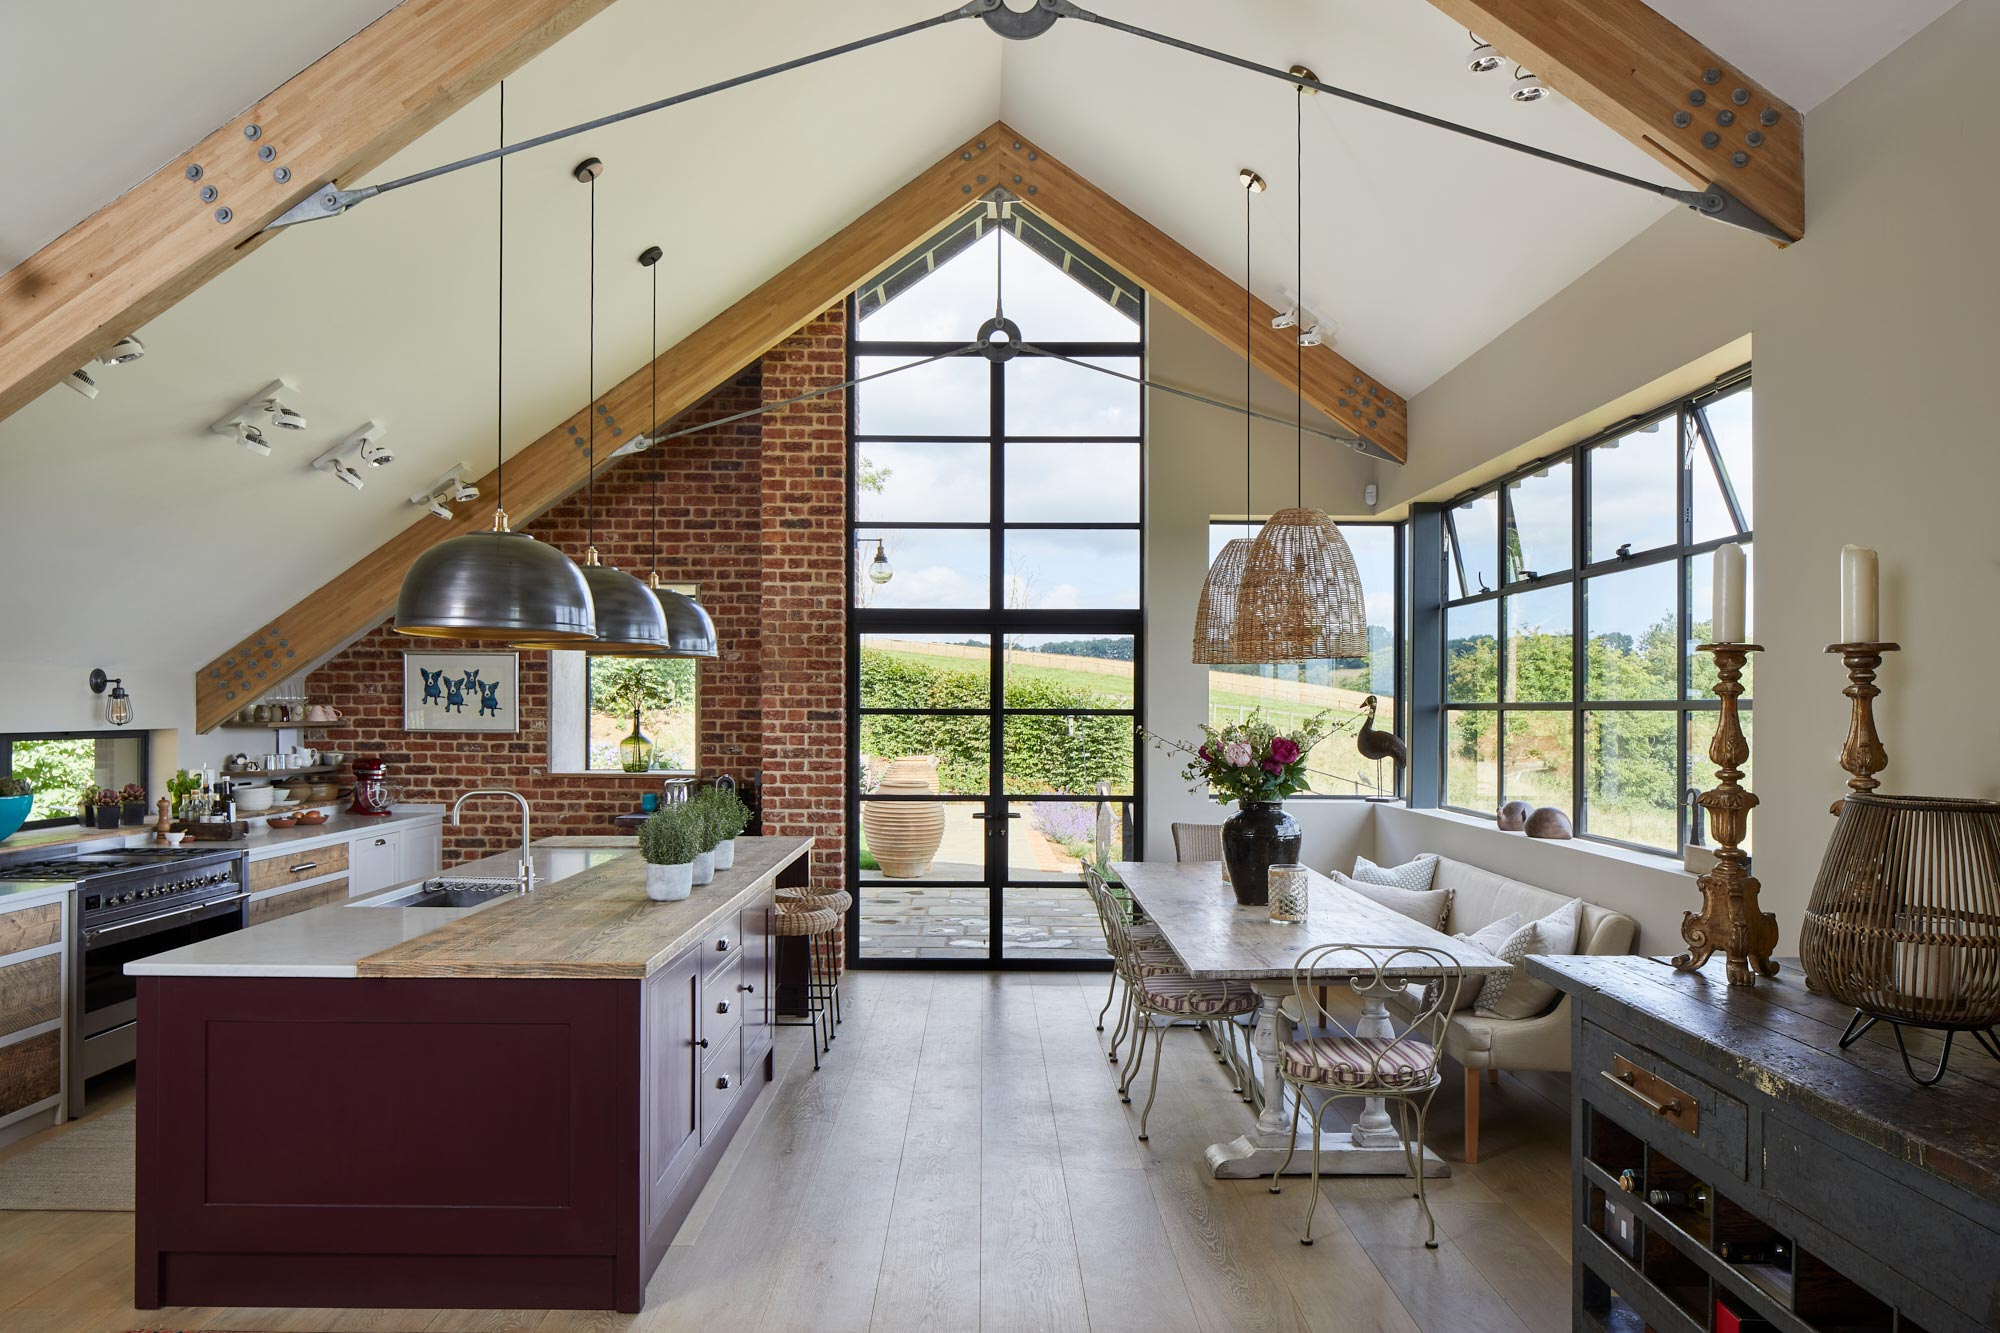 Large kitchen diner with vaulted ceiling